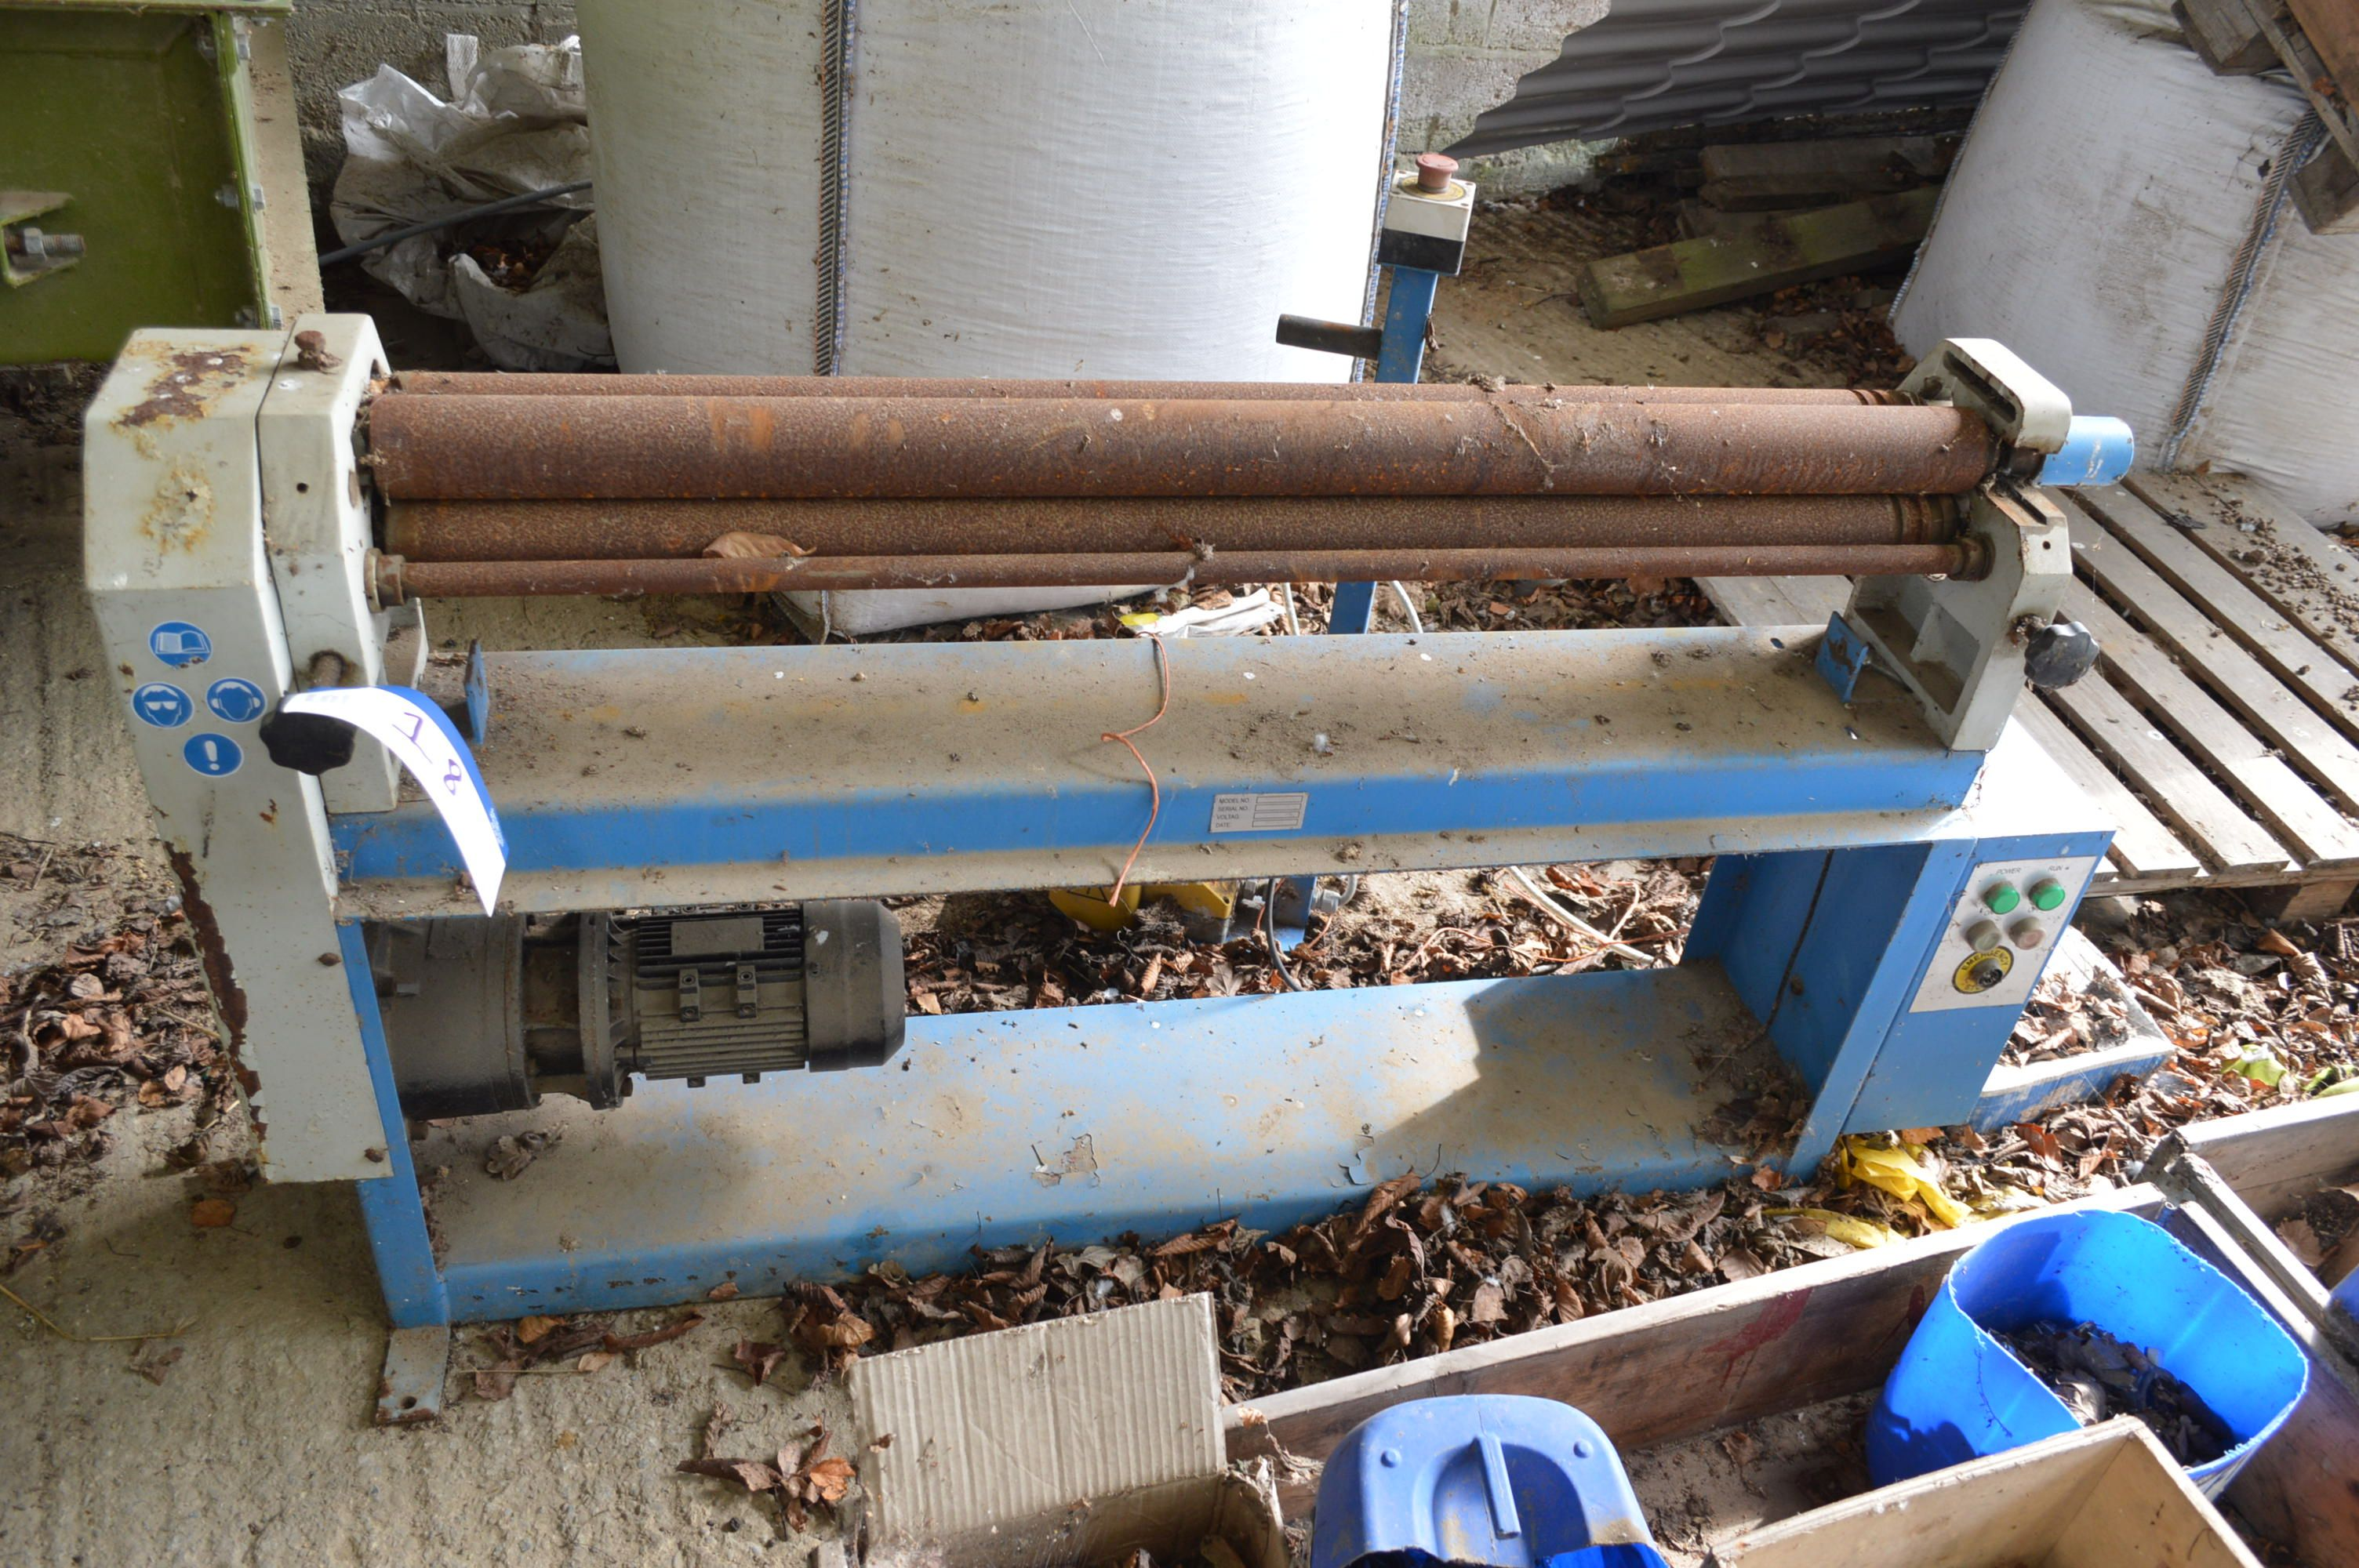 Lot 18 - 1.3m Wide Triple Roll Bending Machine, 240V, with treadle control